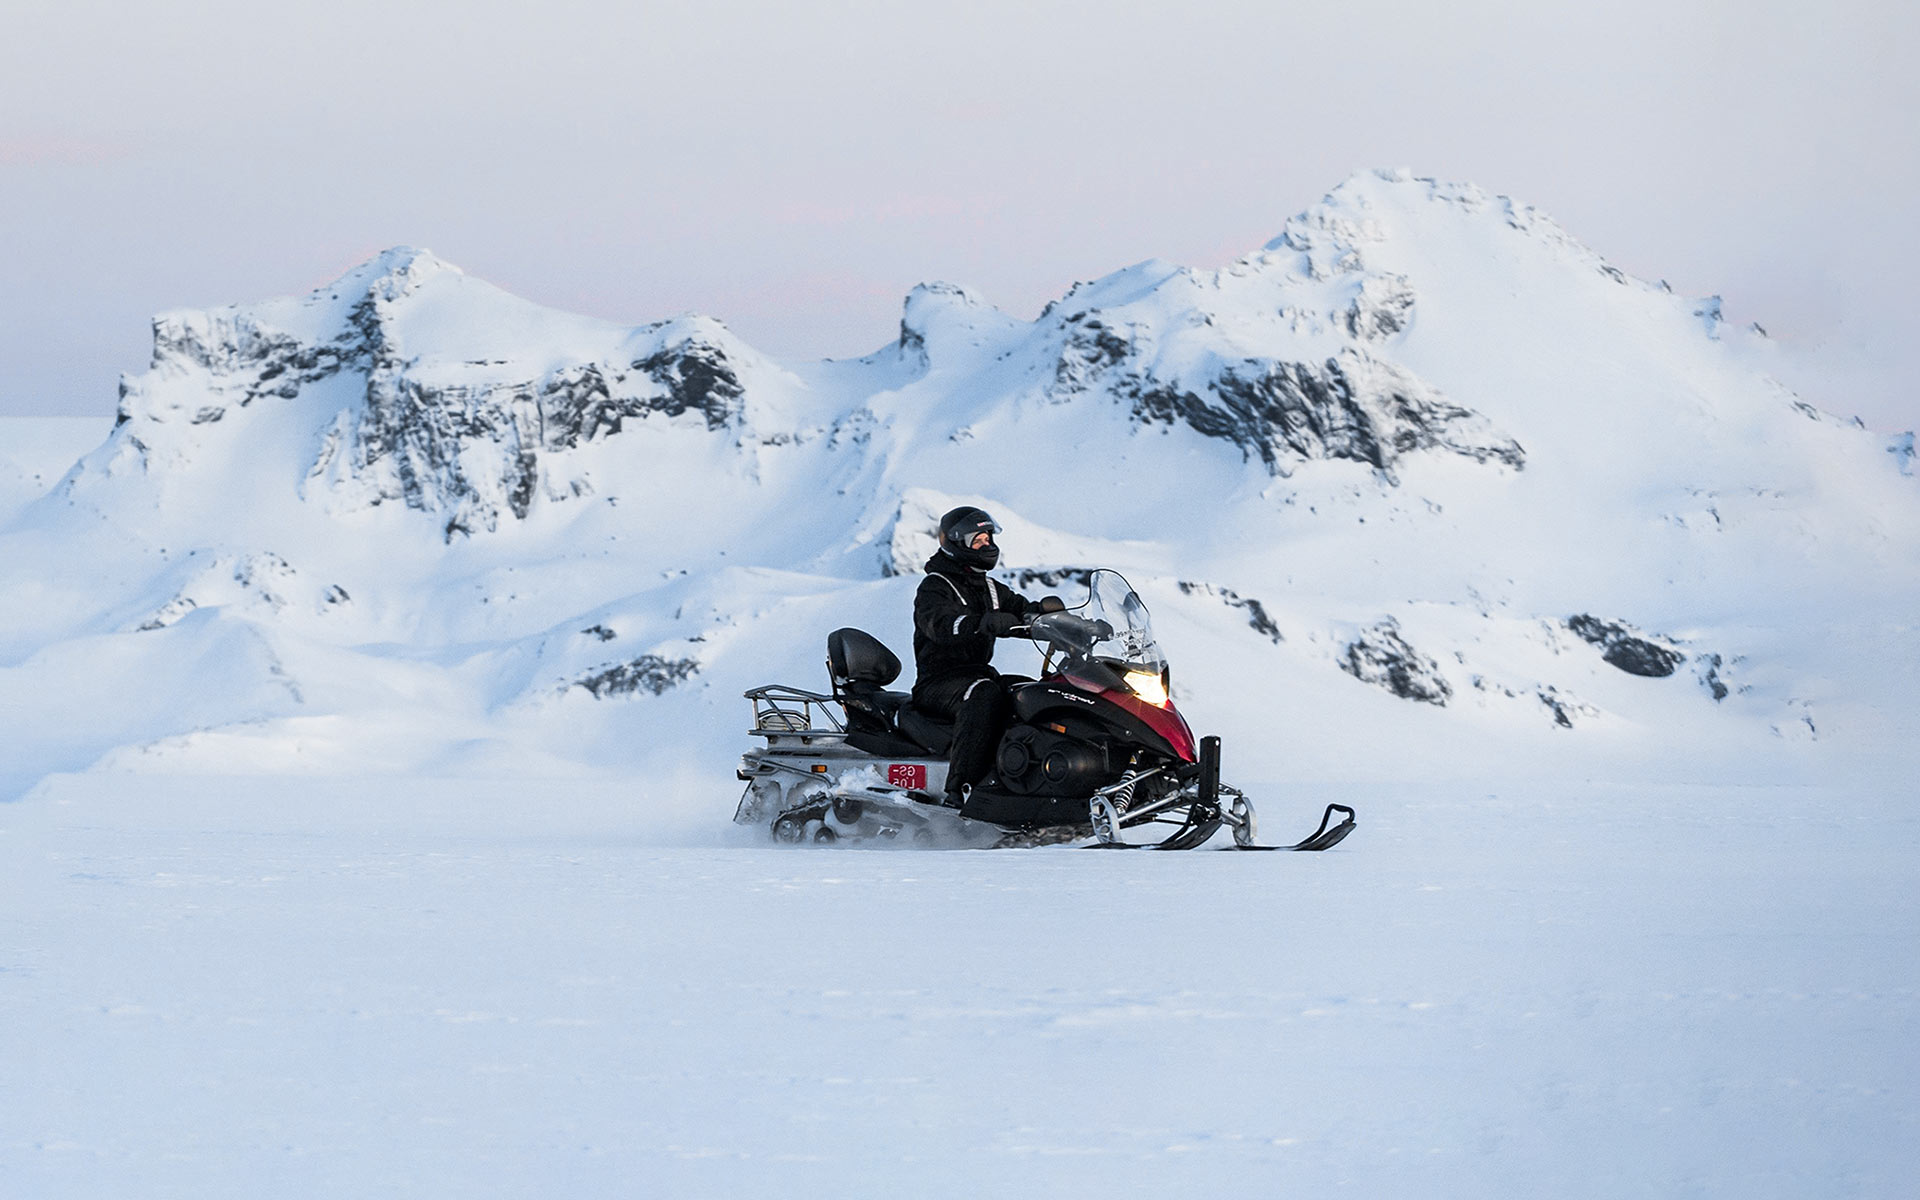 Snowmobiling on Langjokull glacier - Buggy and Snowmobile tour in Iceland